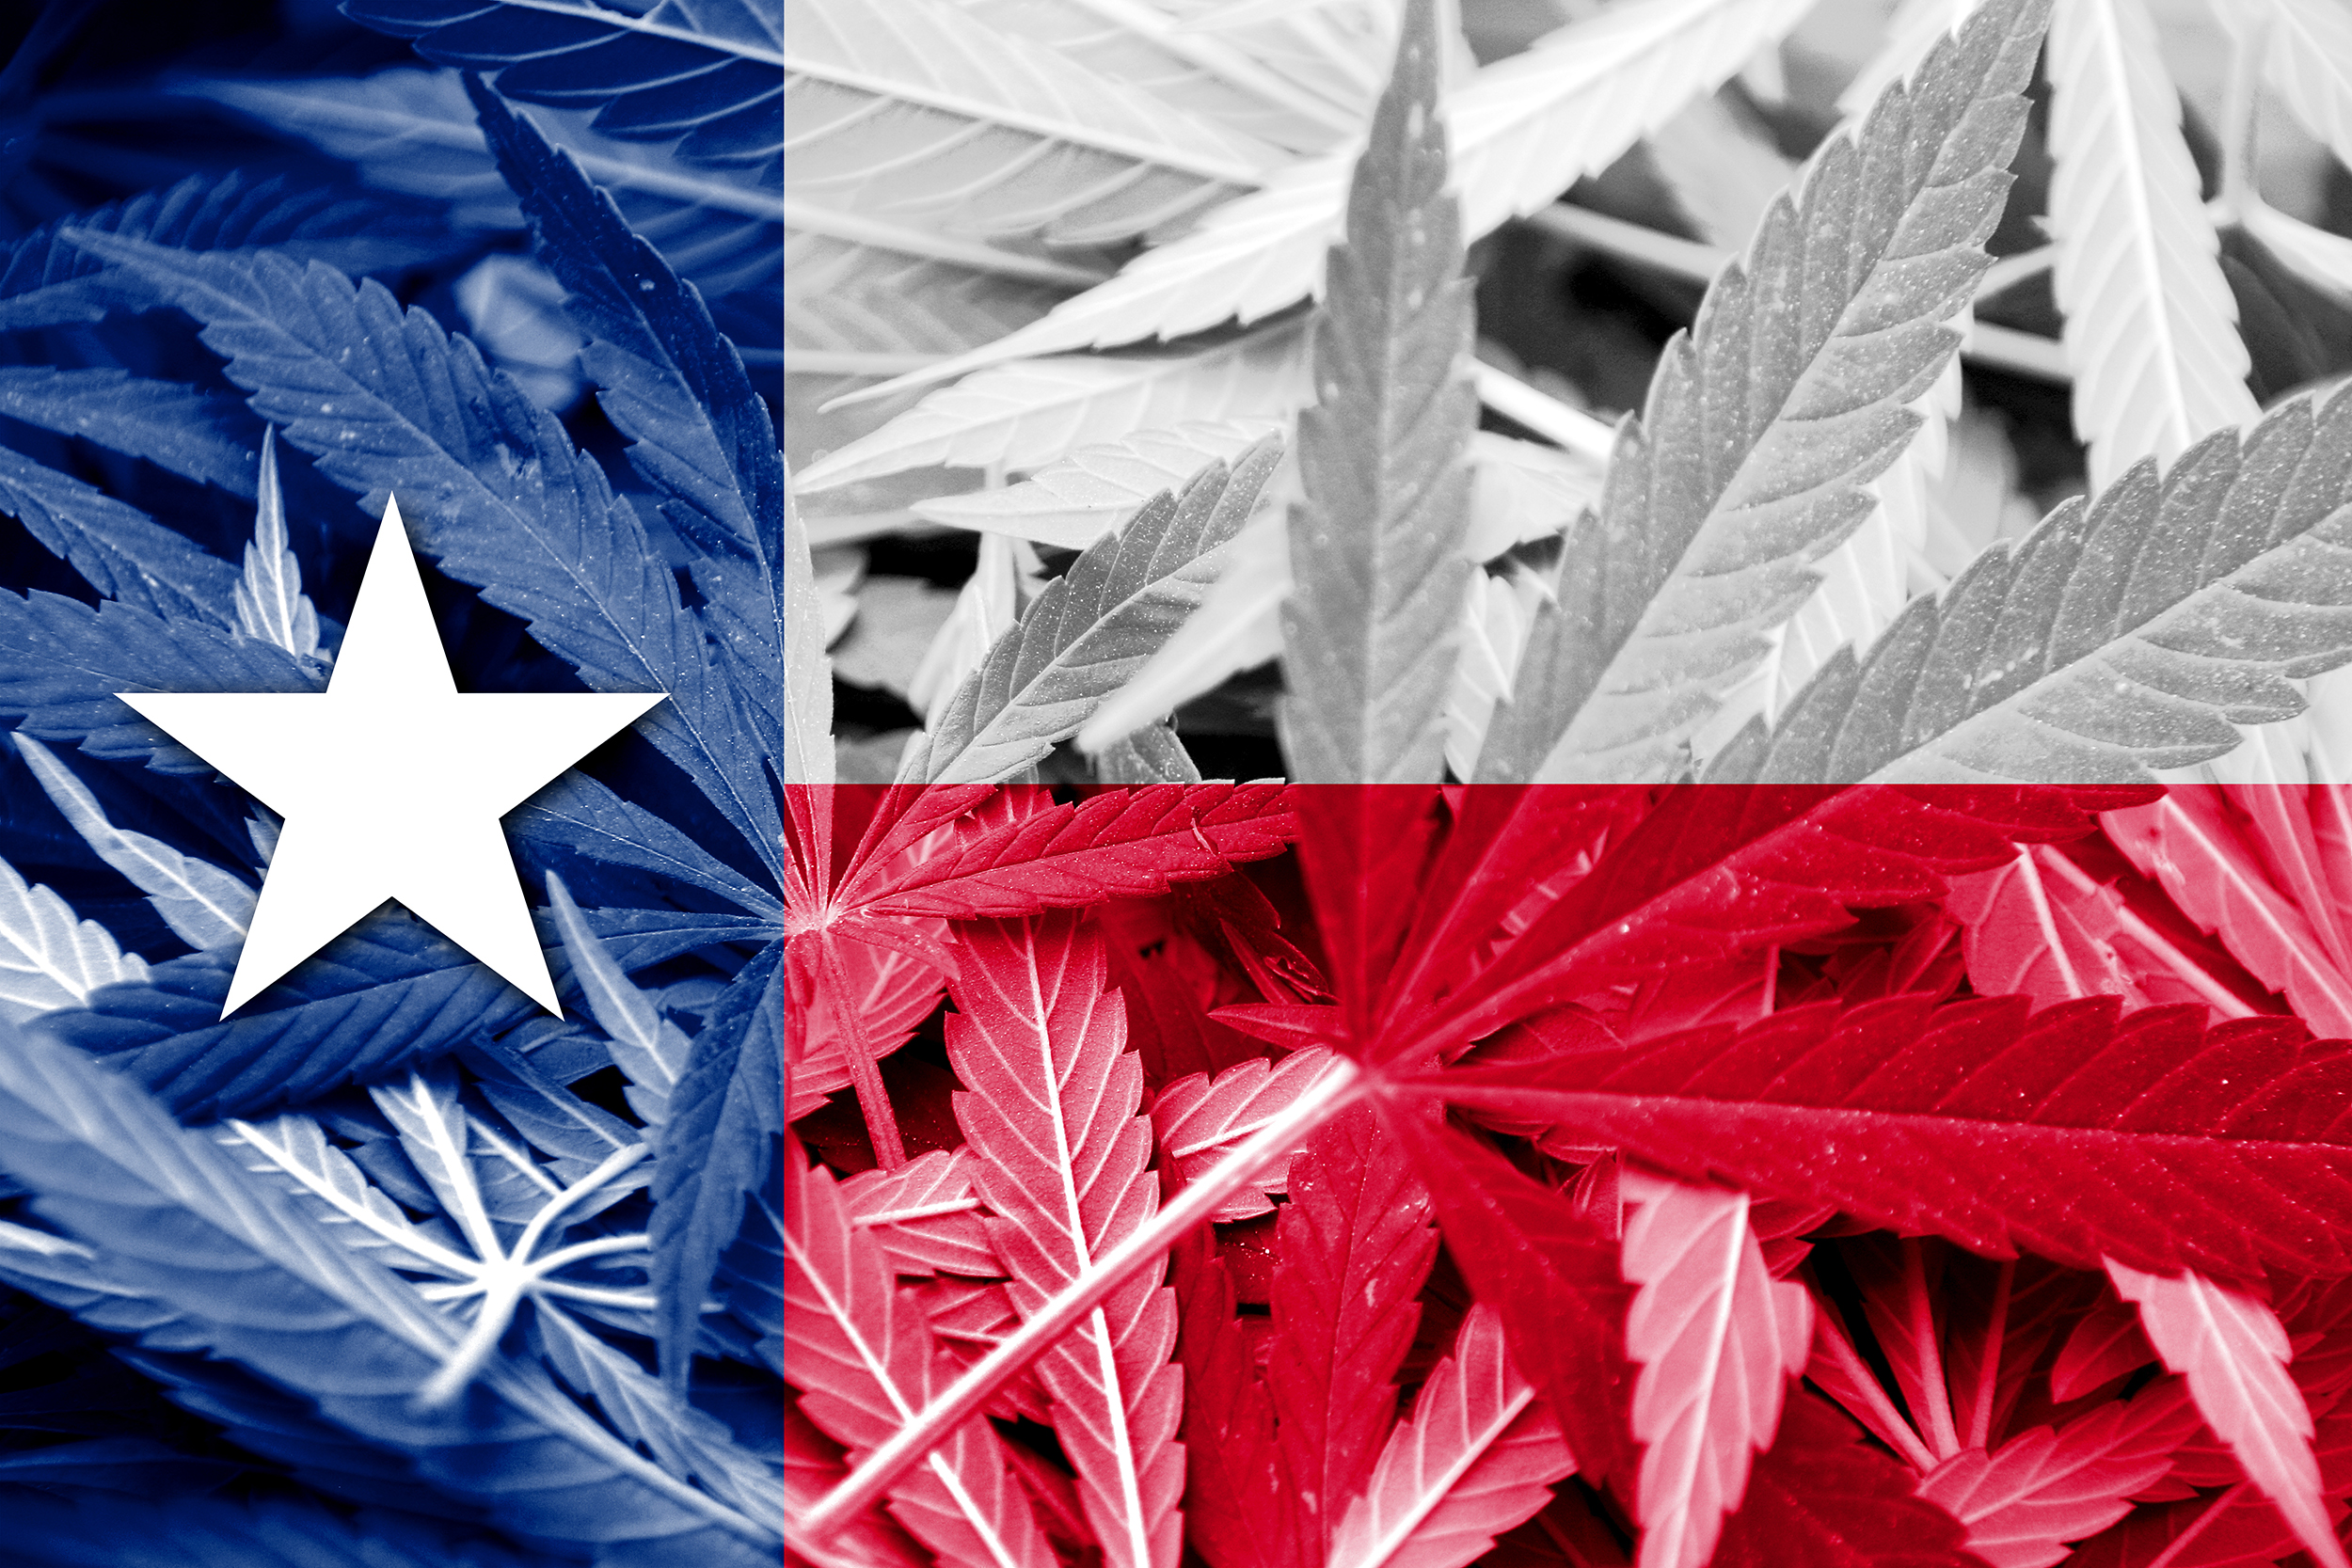 Texas Expands Medical Marijuana Program